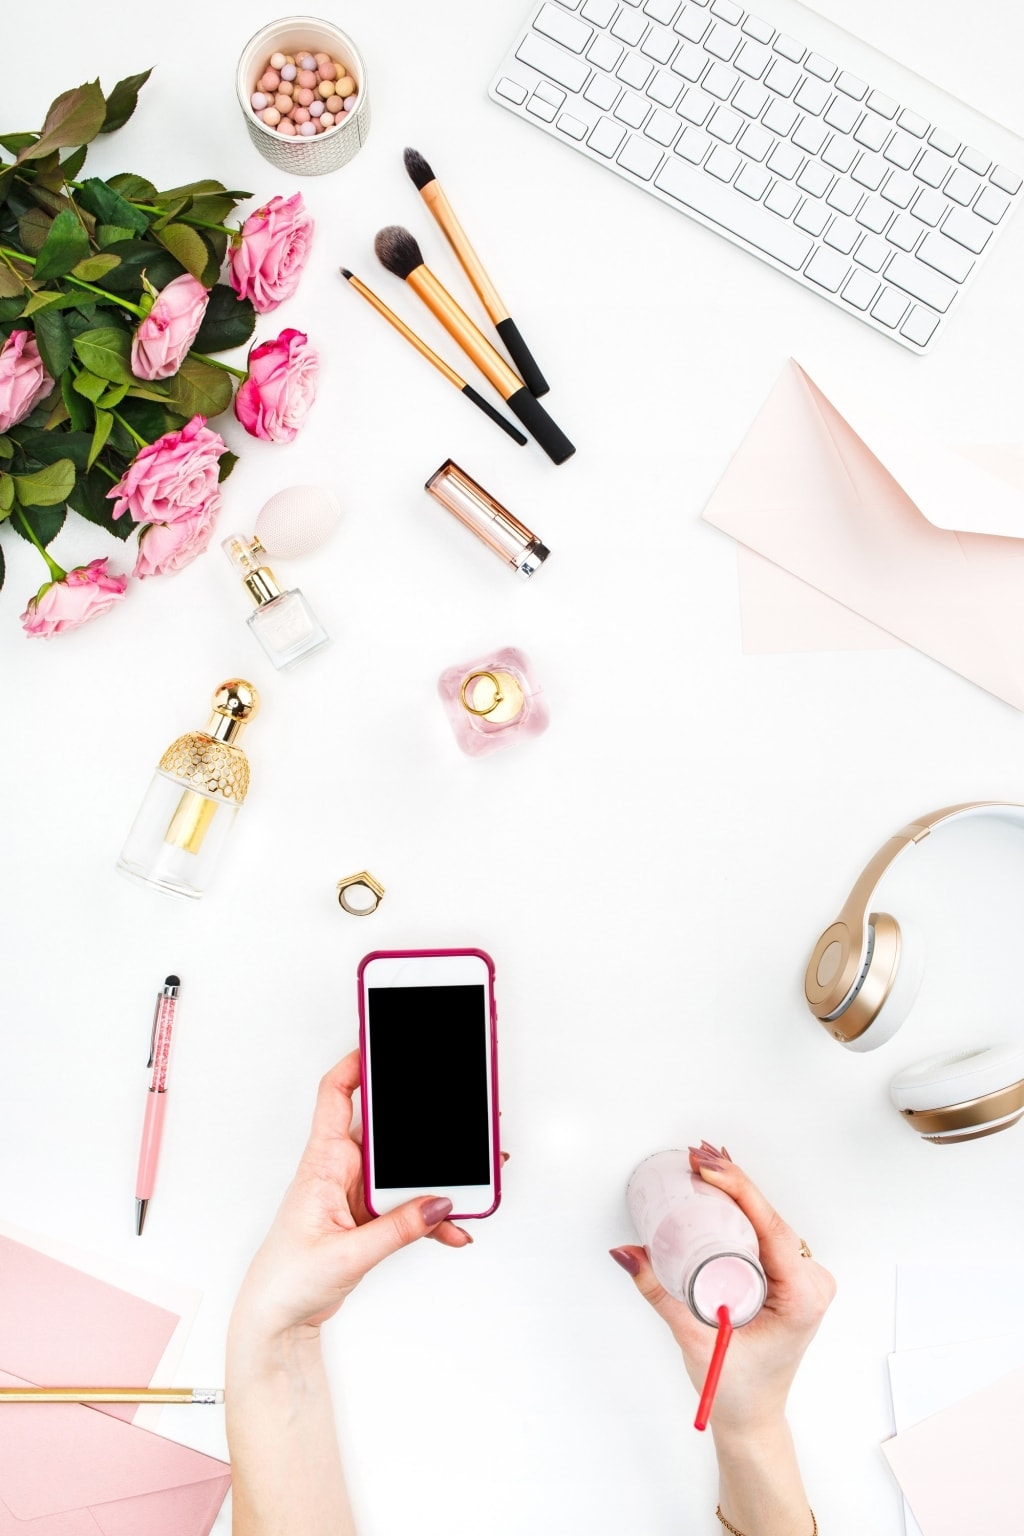 How To Start A Successful Fashion Blog in 2020